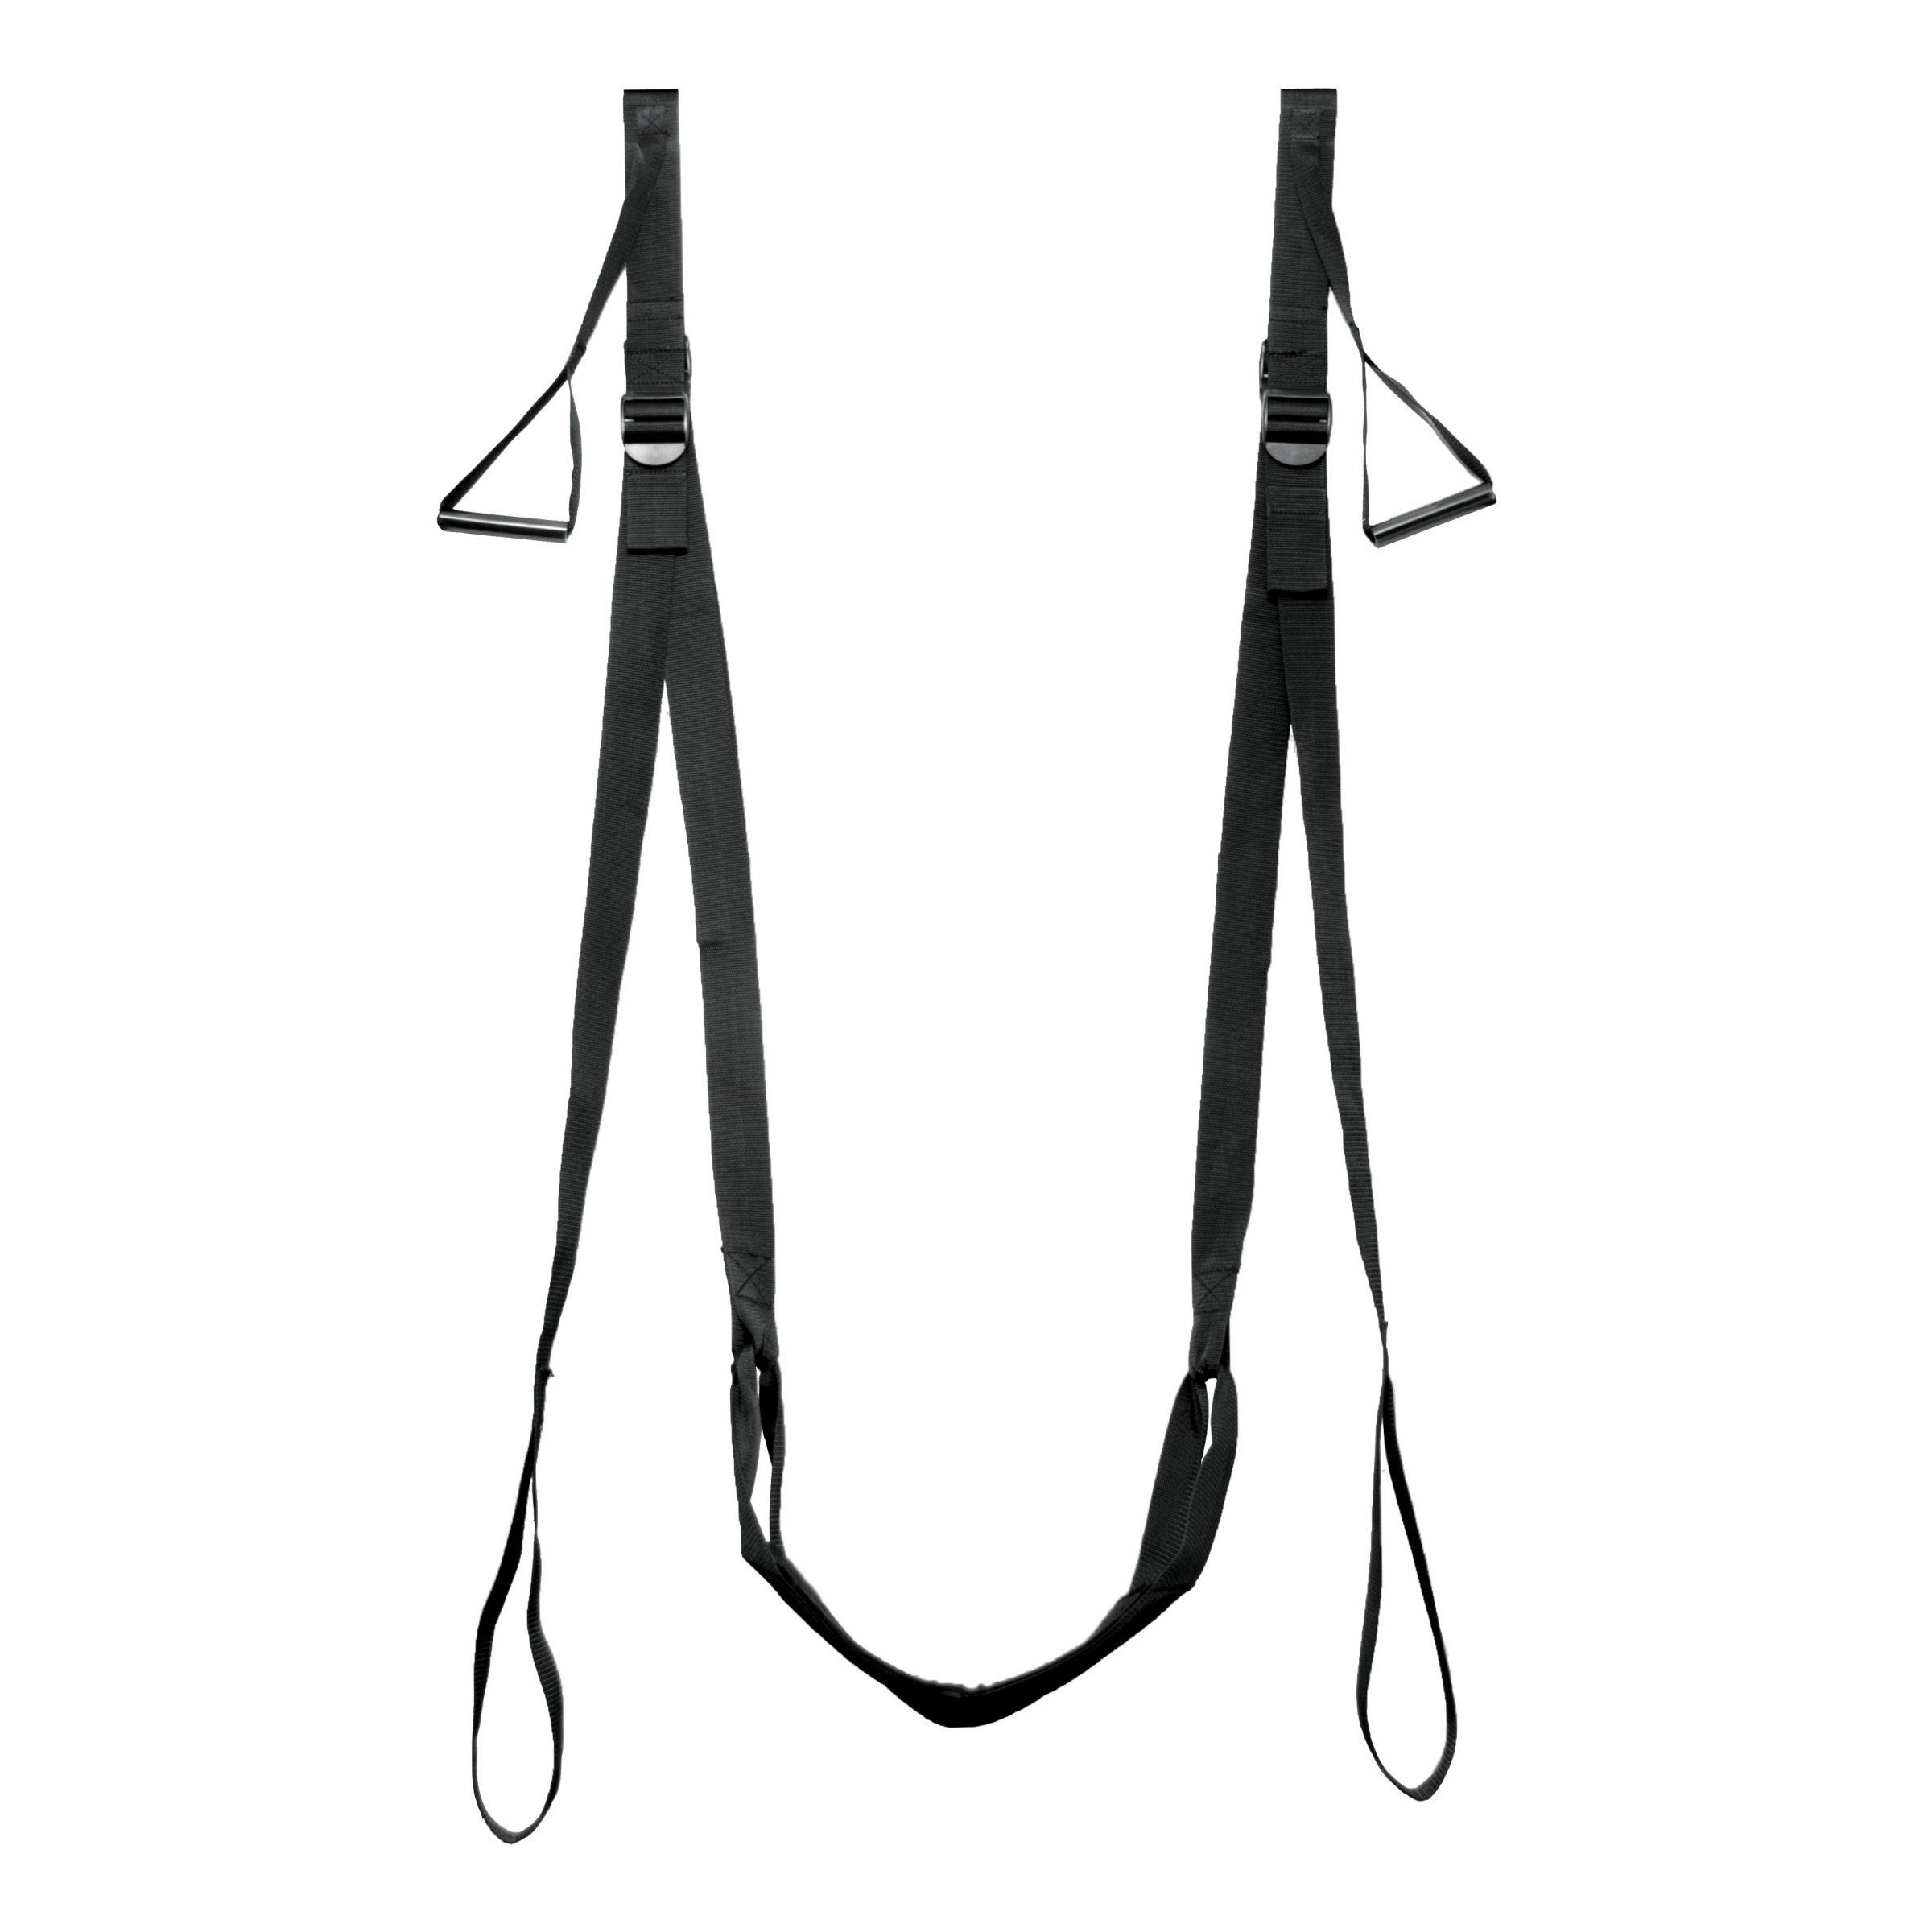 Elite sportsheets bdsm thigh sling restraints